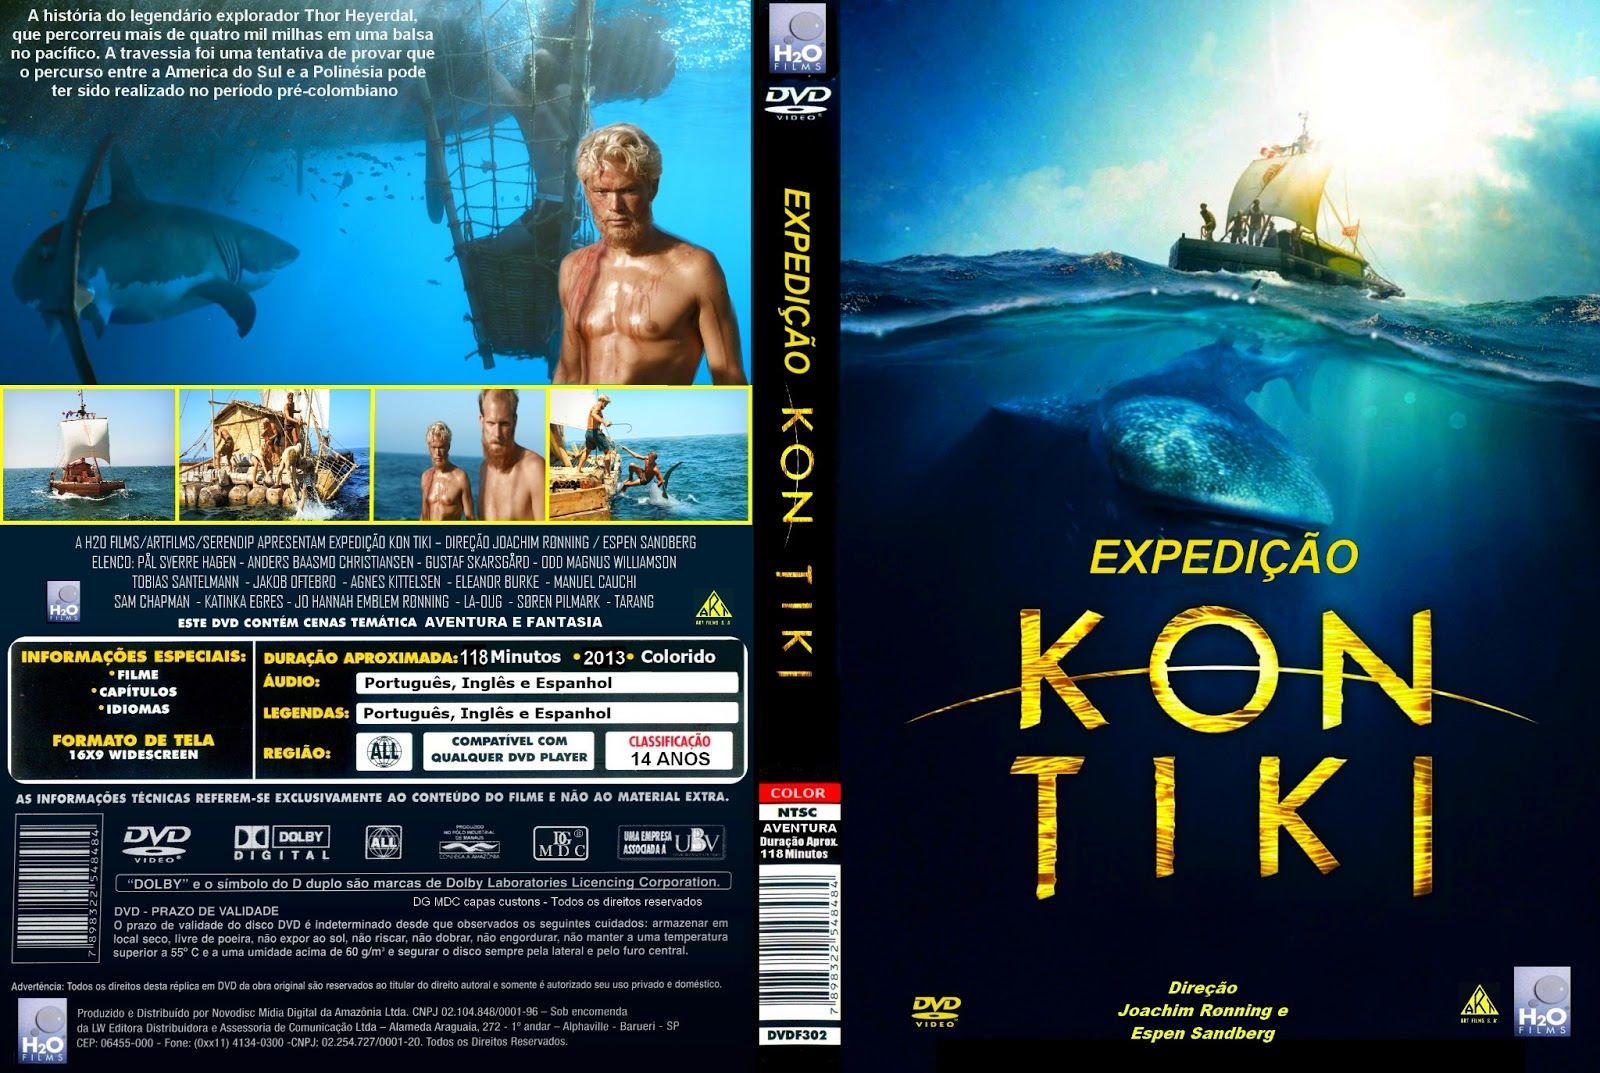 Download Expedição Kon-Tiki BDRip XviD Dual Áudio Expedi C3 A7 C3 A3o Kon Tiki